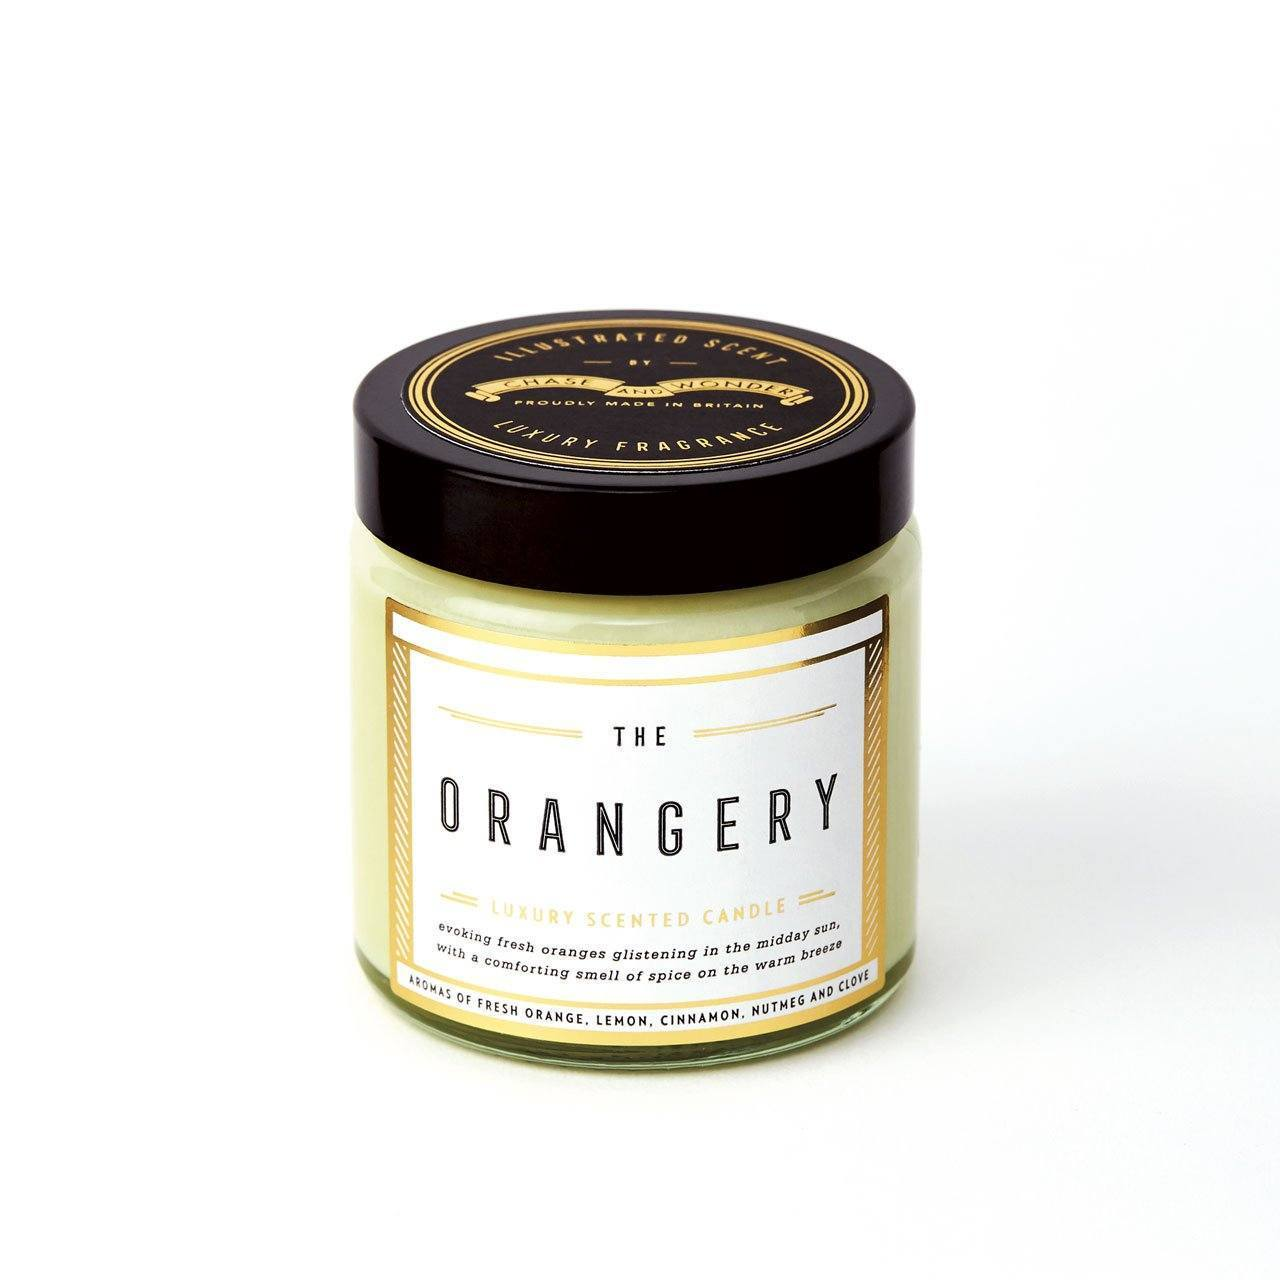 The Orangery Scented Travel Candle - Chase and Wonder - Proudly Made in Britain